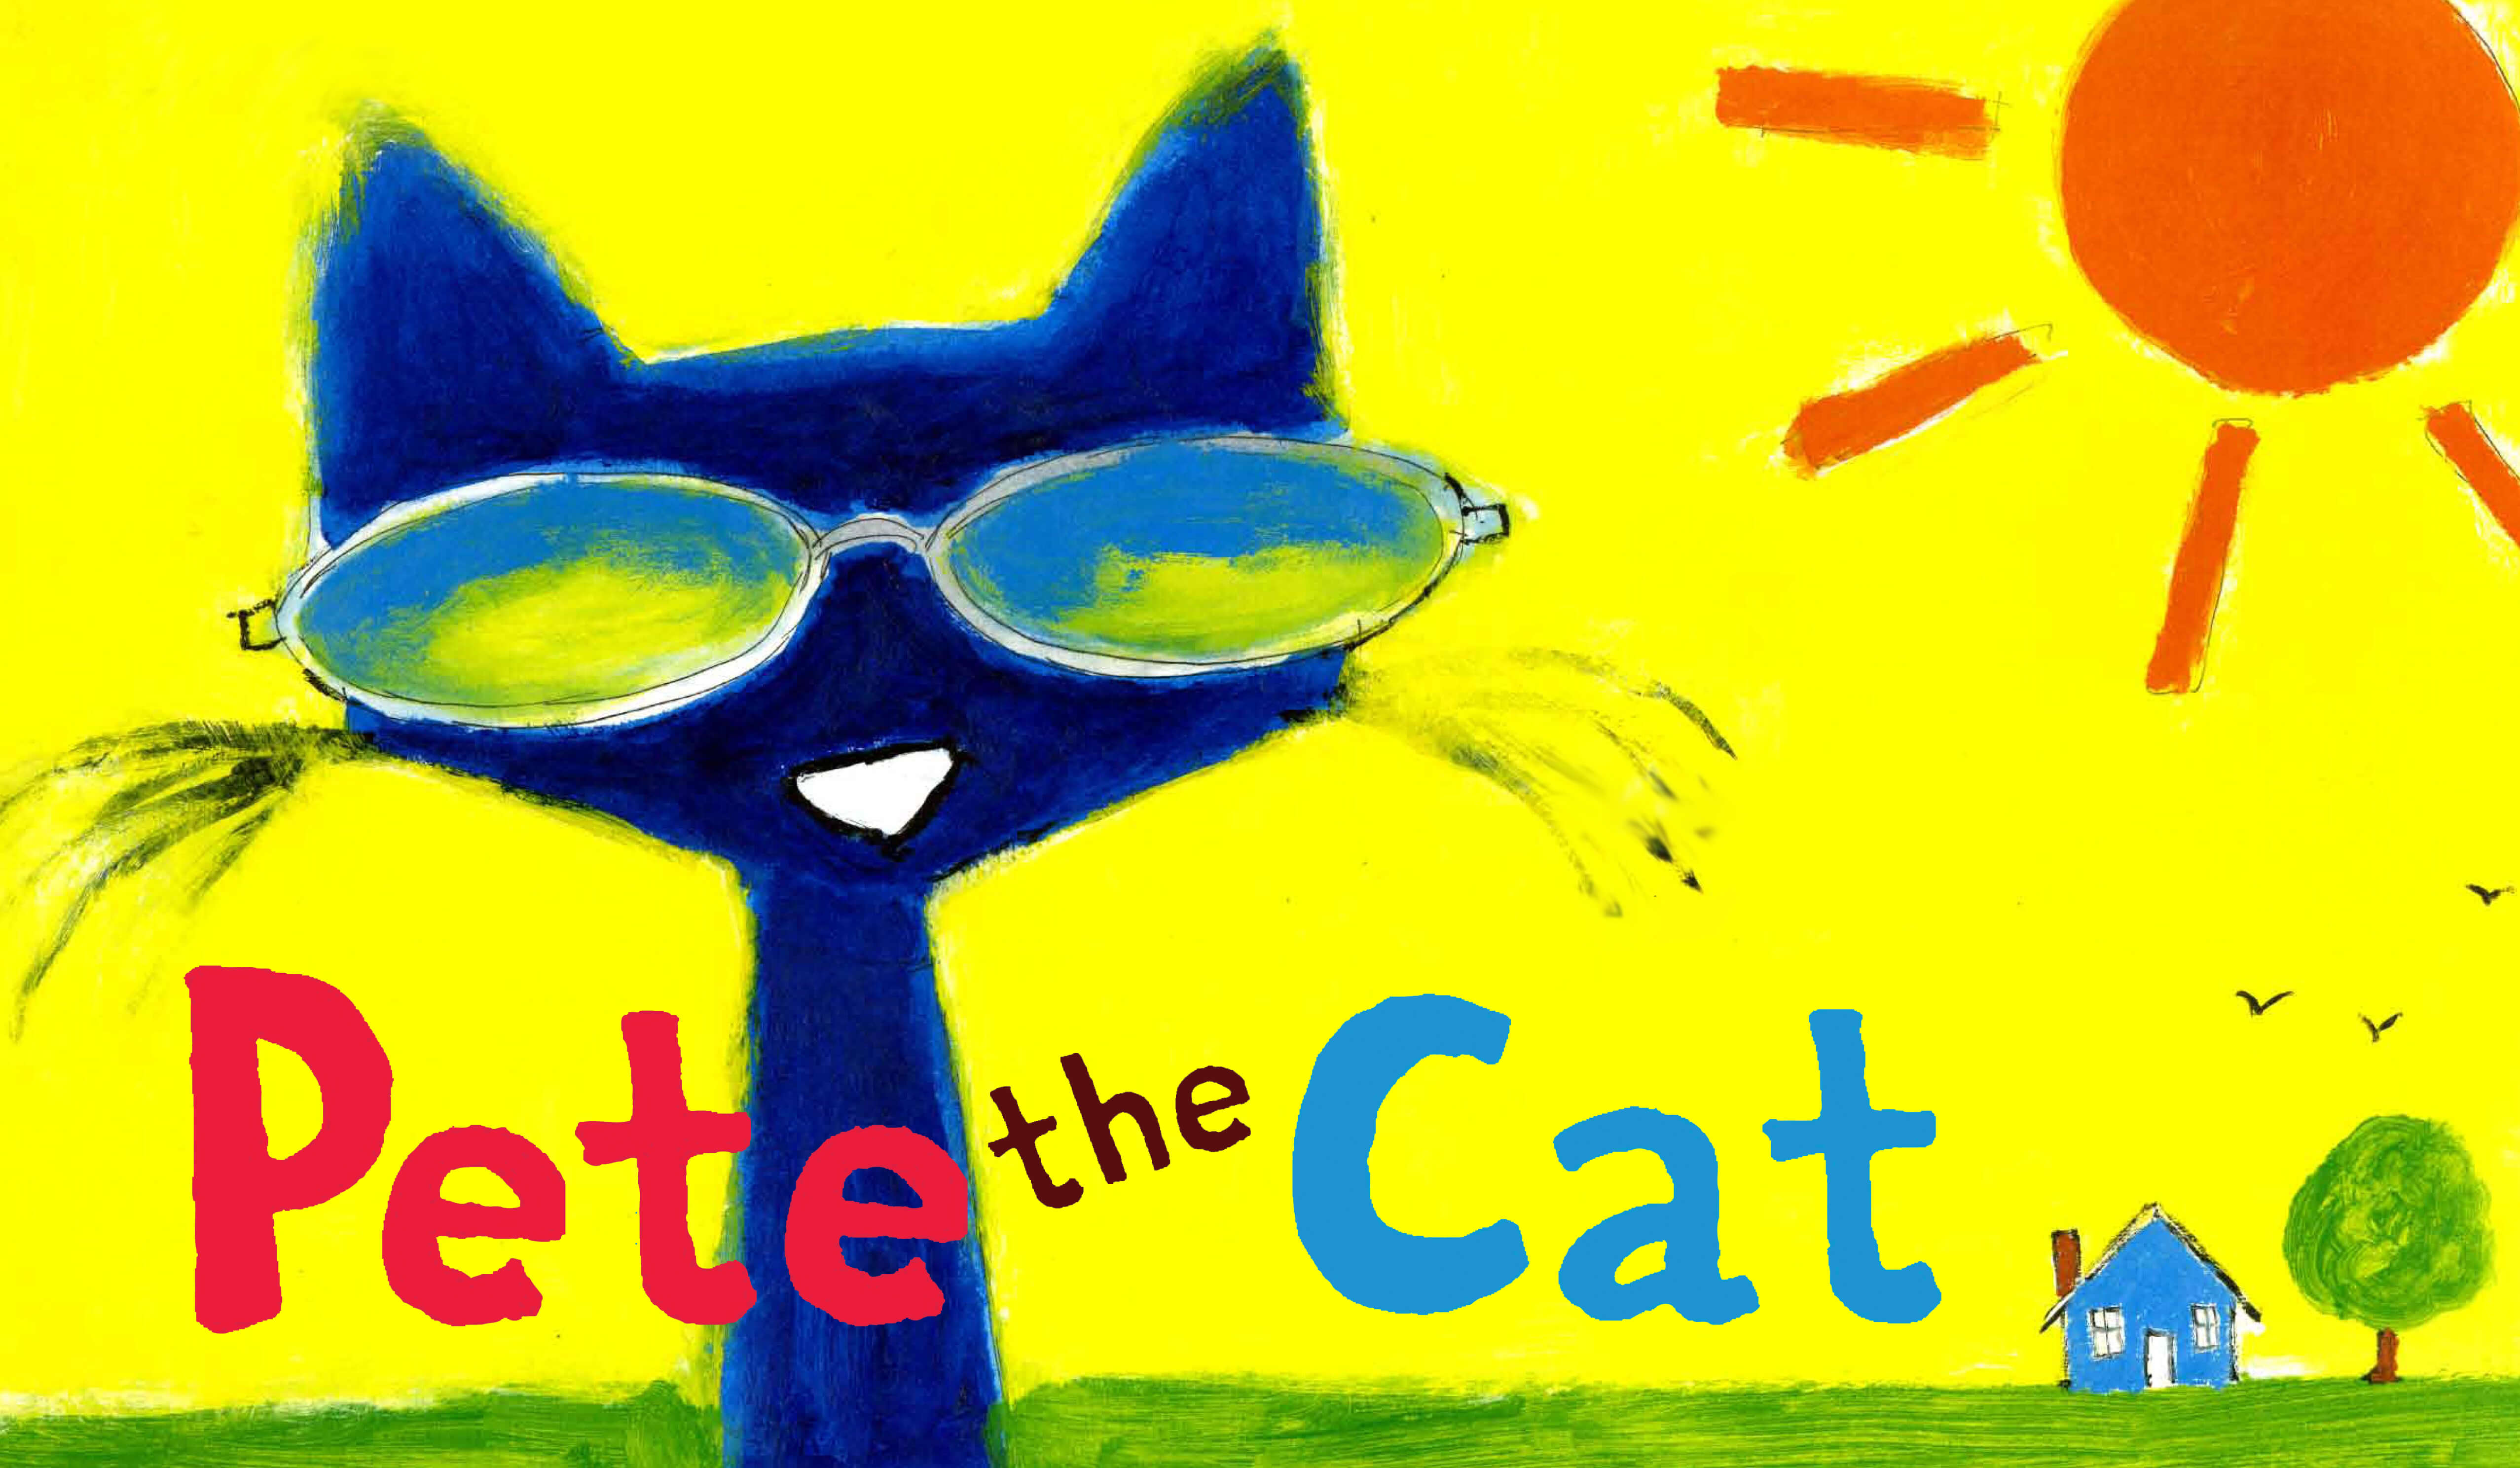 Pete the cat i love my shoes clipart